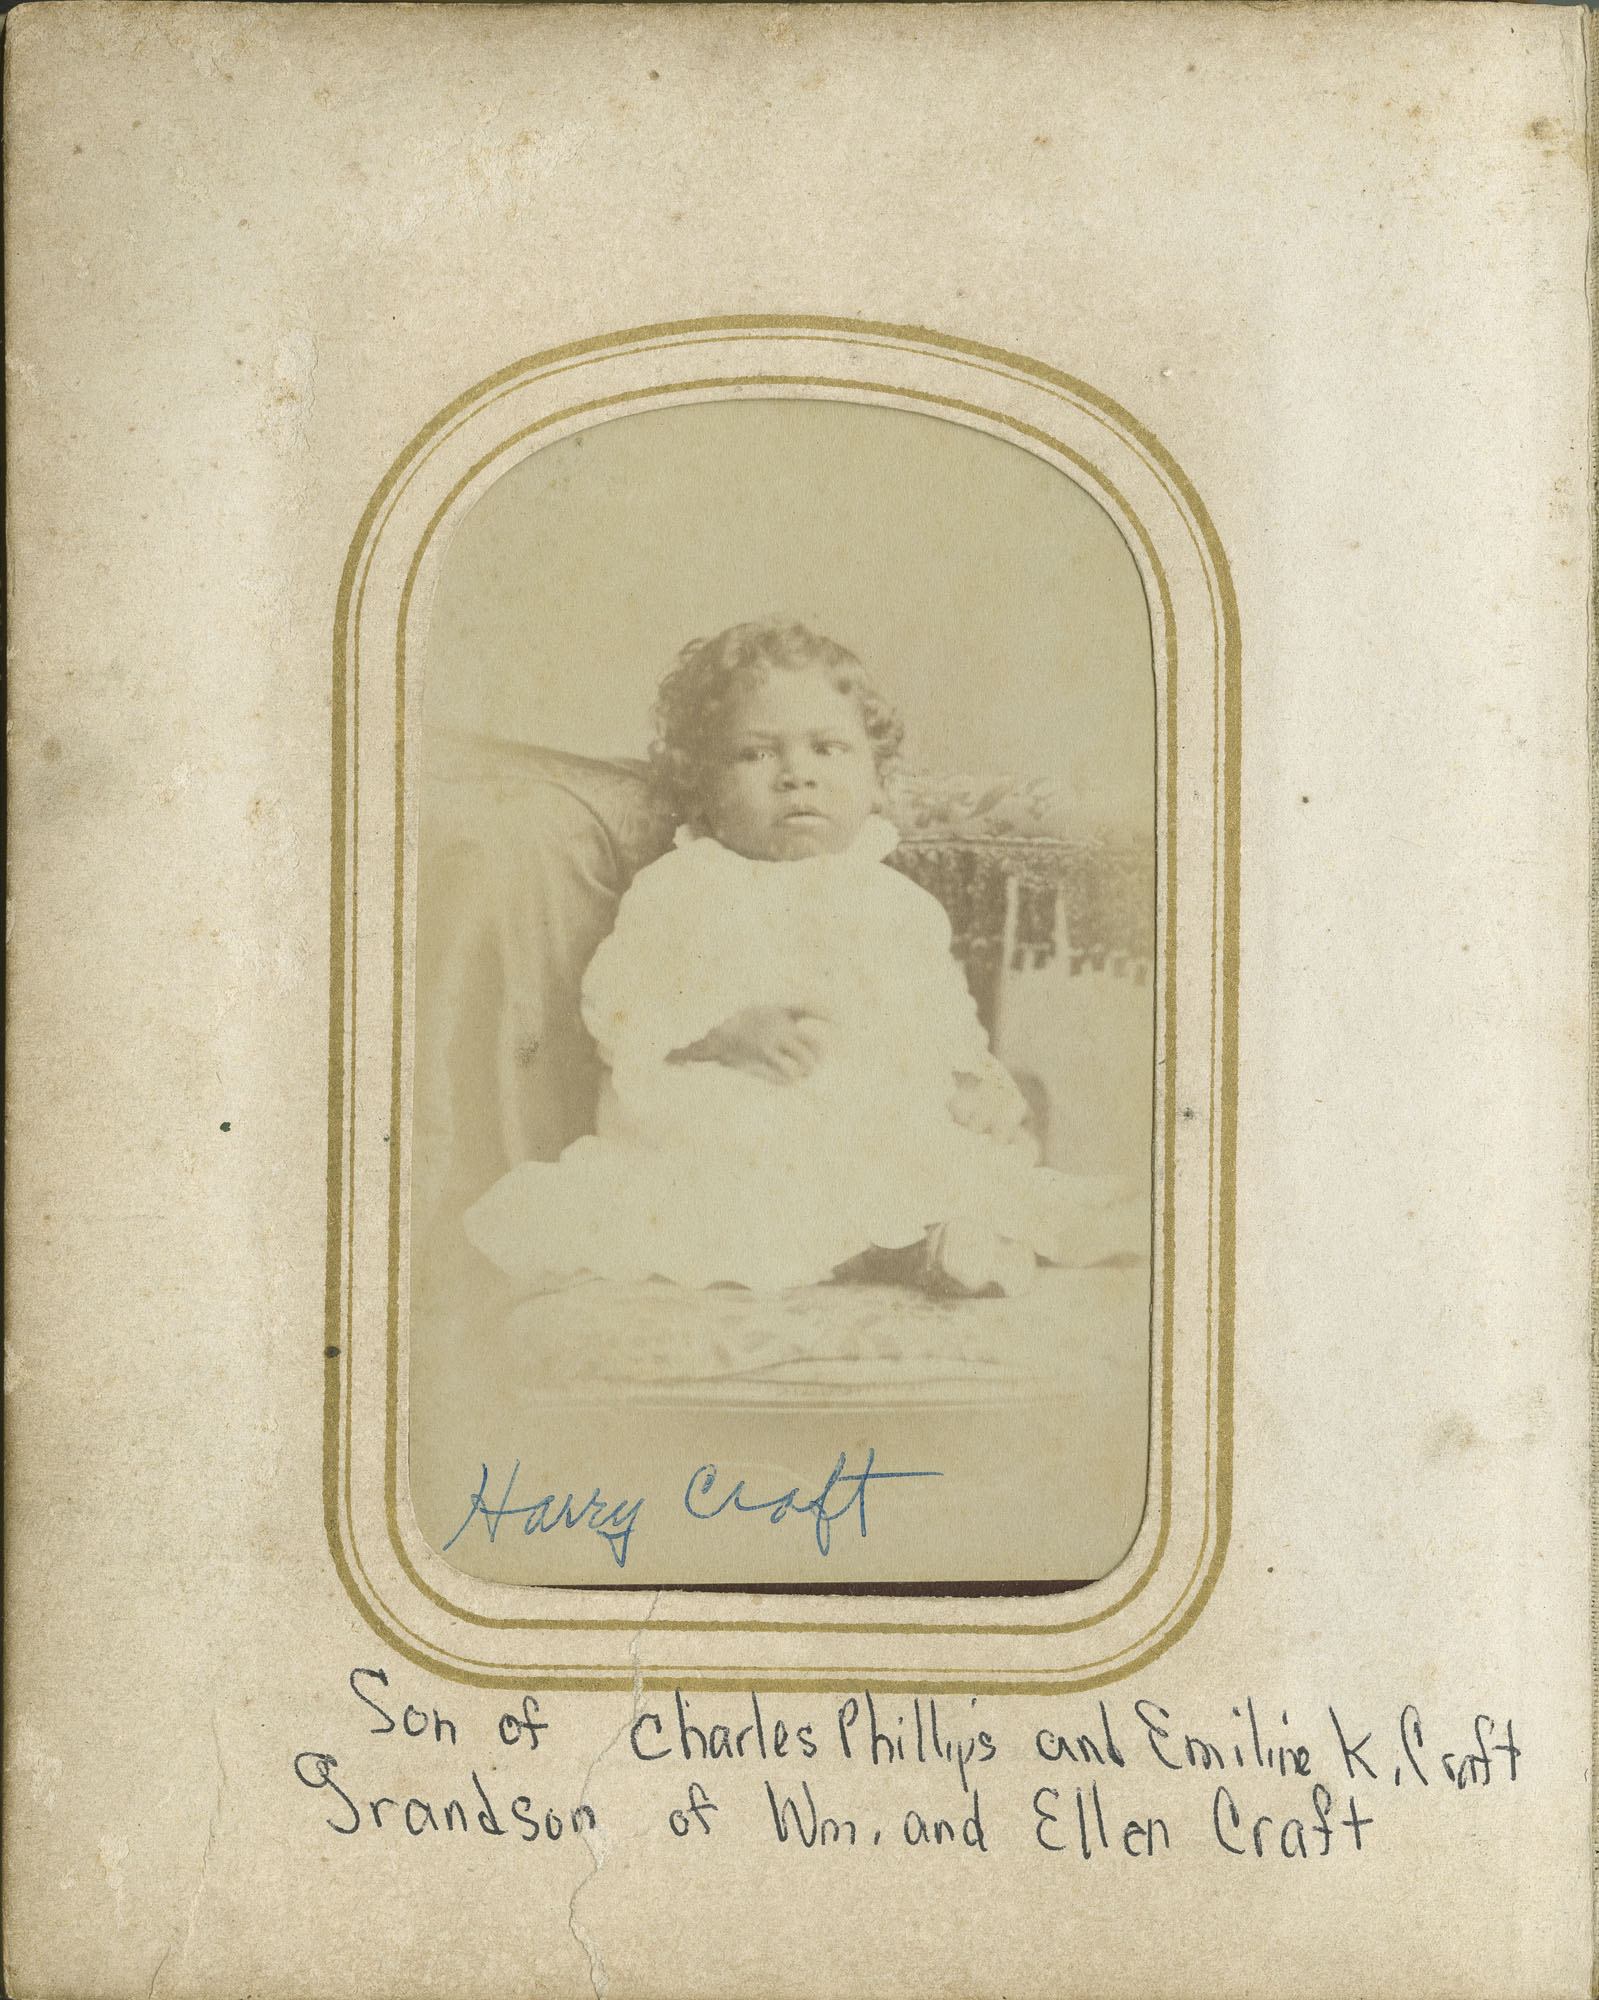 14. Photograph of Harry Craft as an Infant